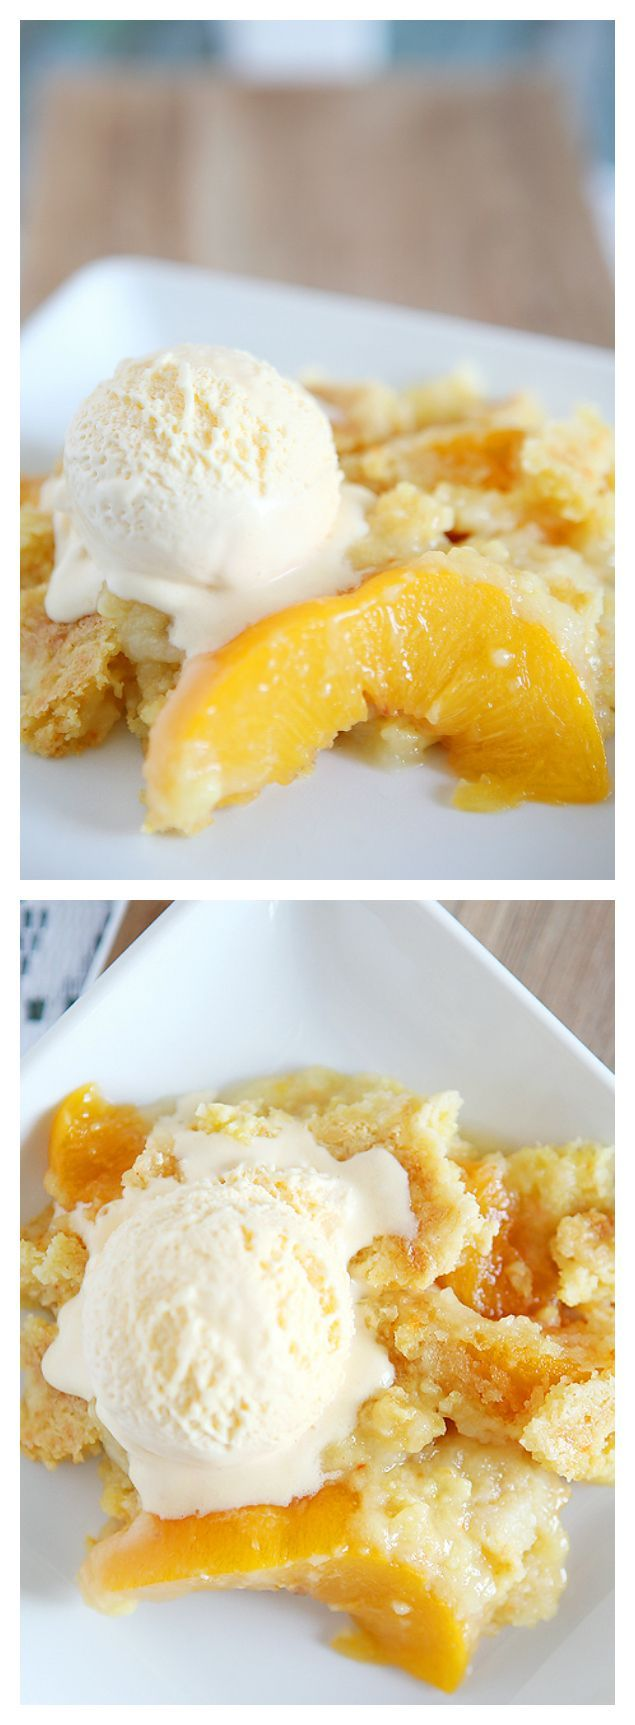 Peach Dump Cake | Dump Cake Recipes